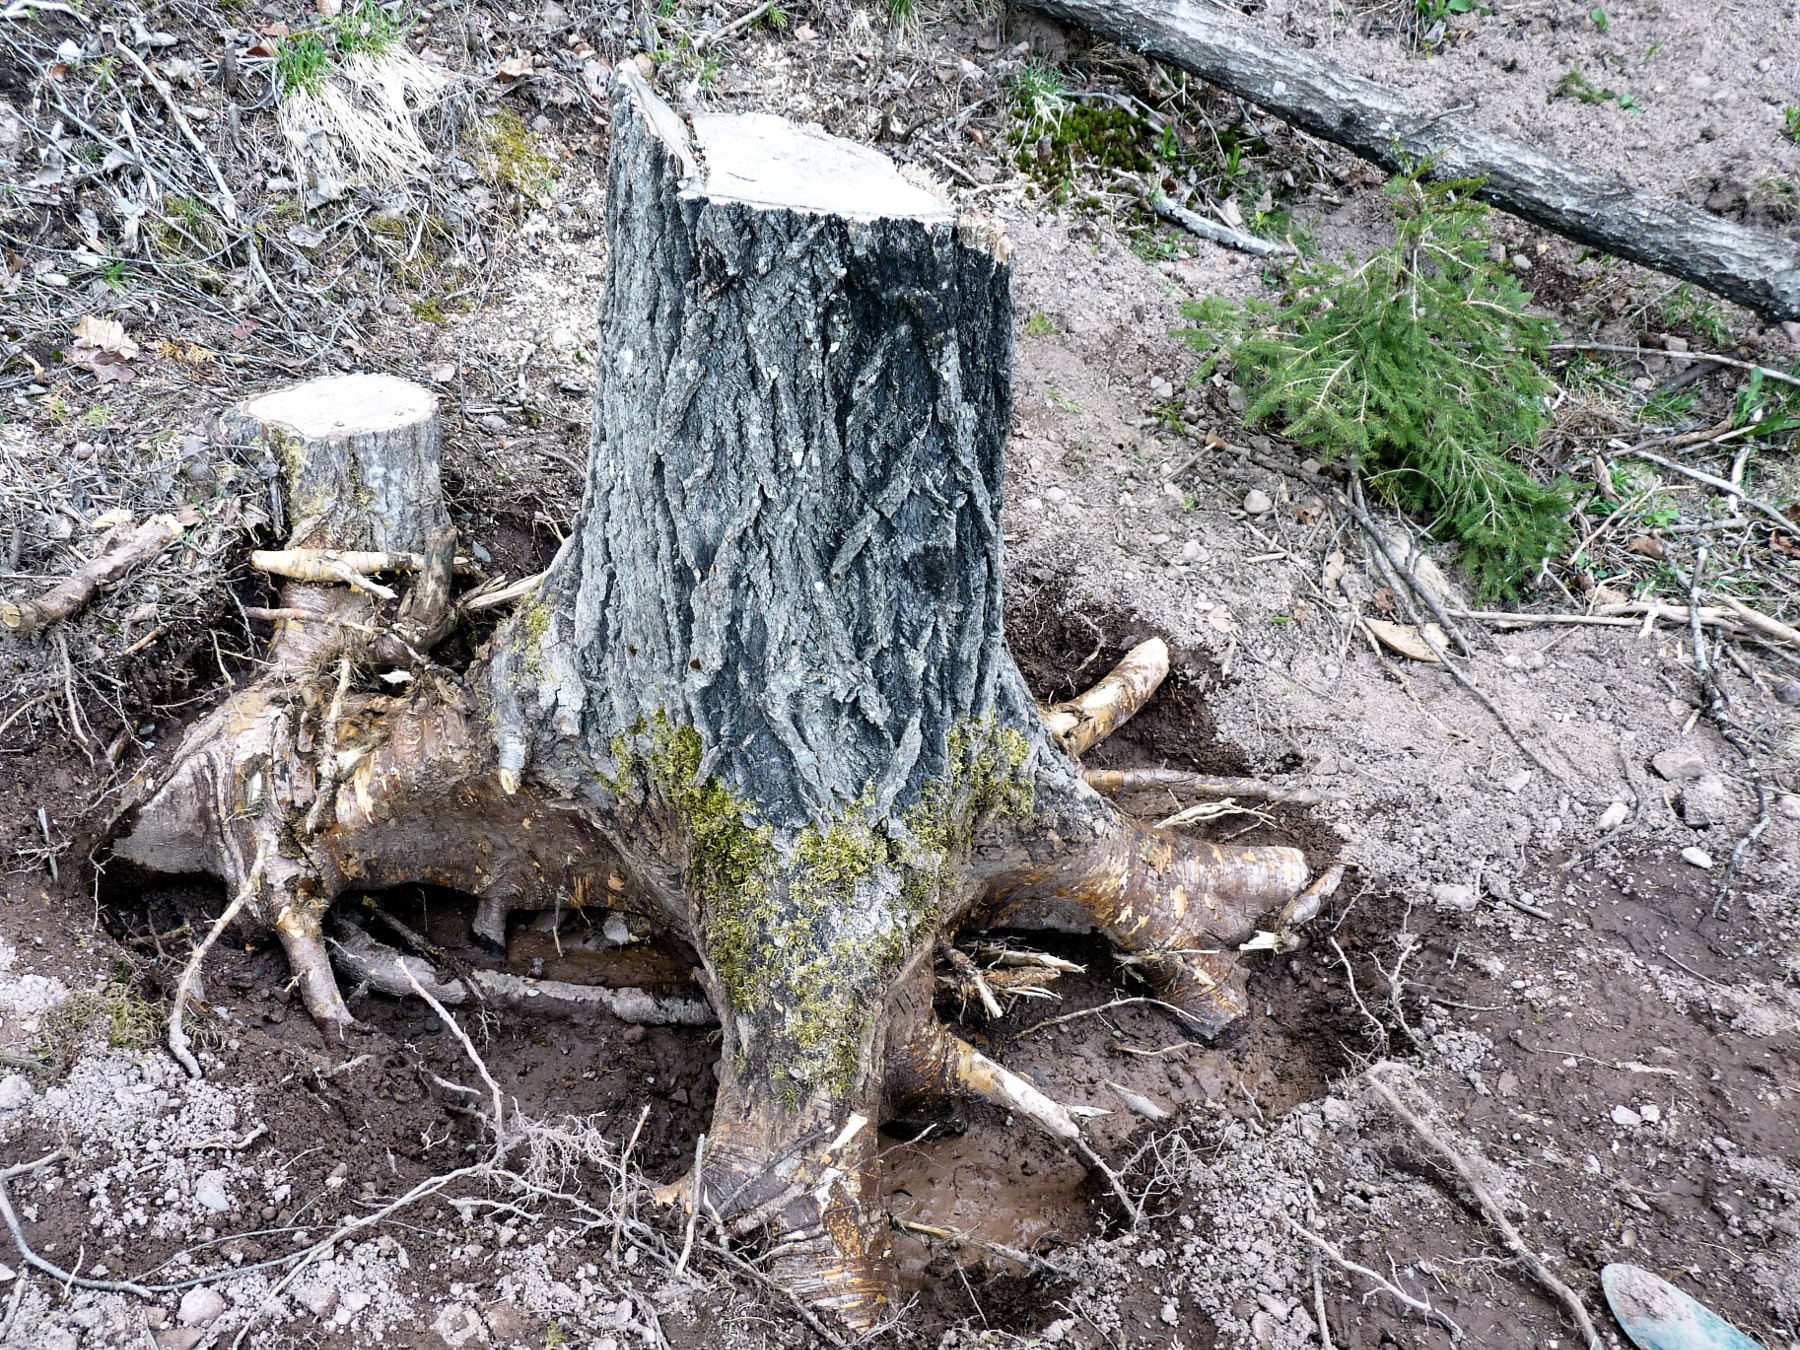 Stihl MS 271 vs poplar stump